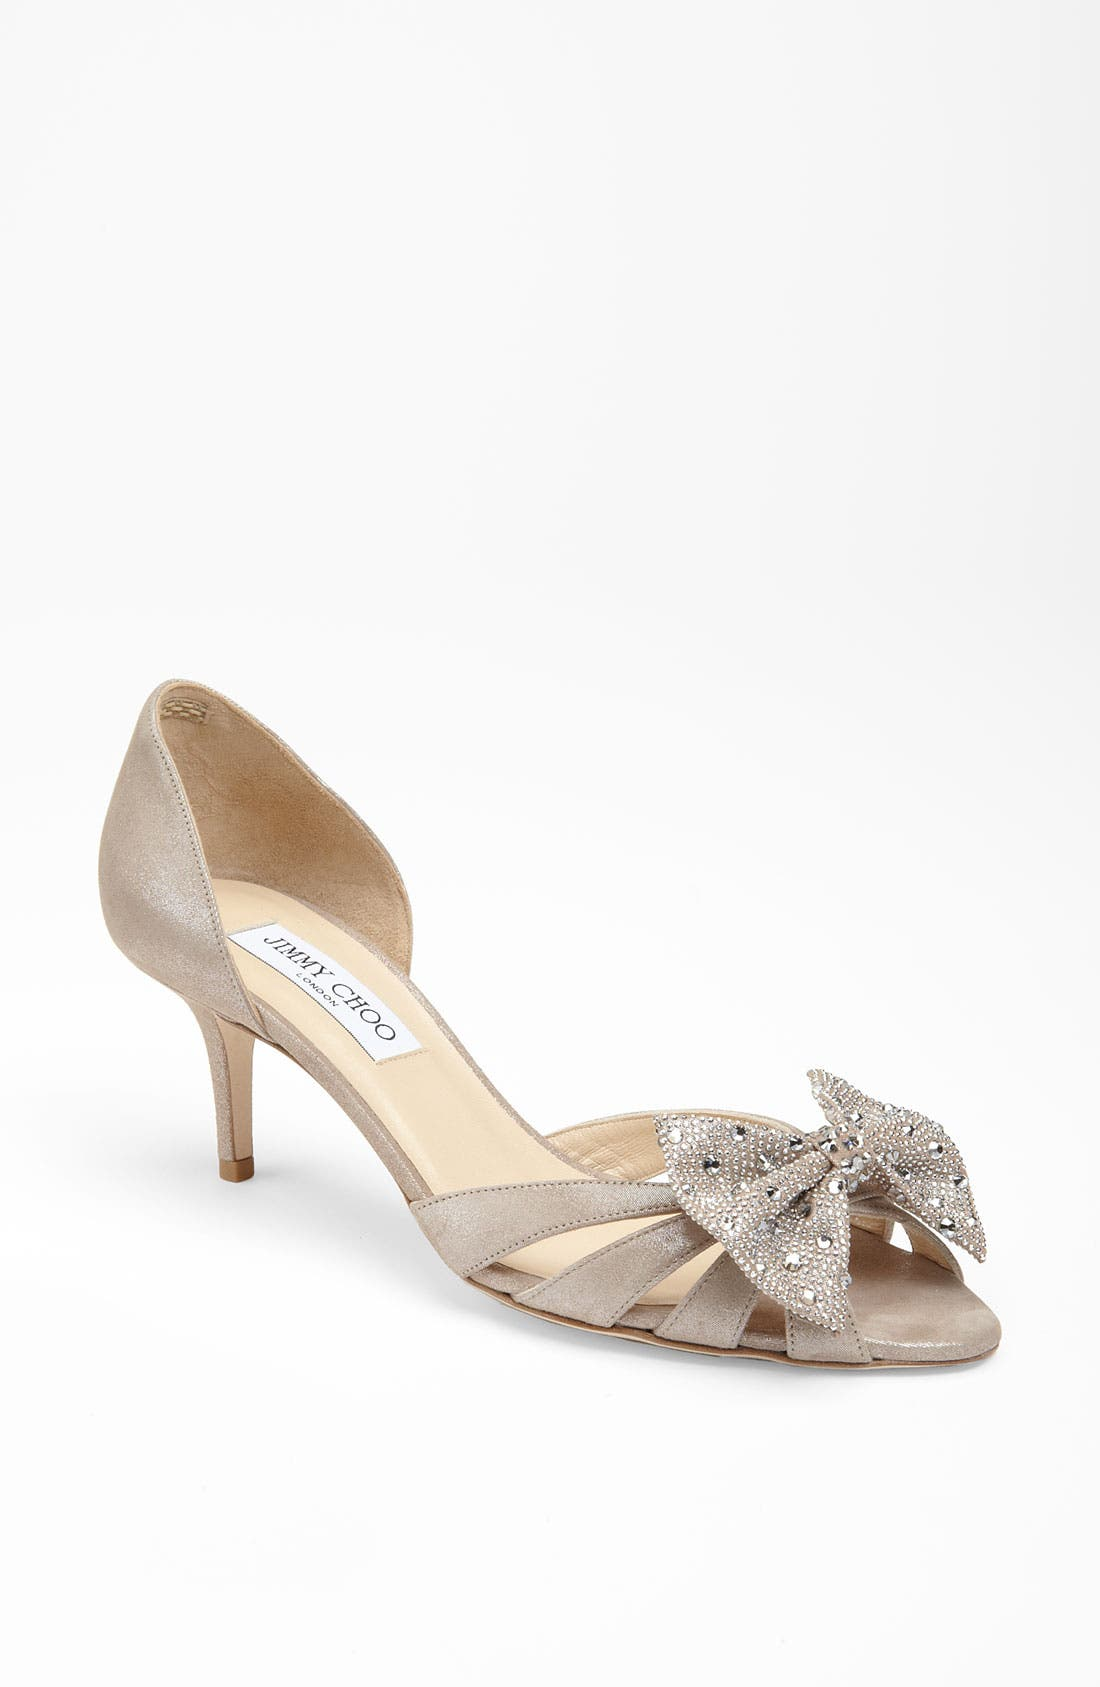 Main Image - Jimmy Choo 'Tabina' Pump